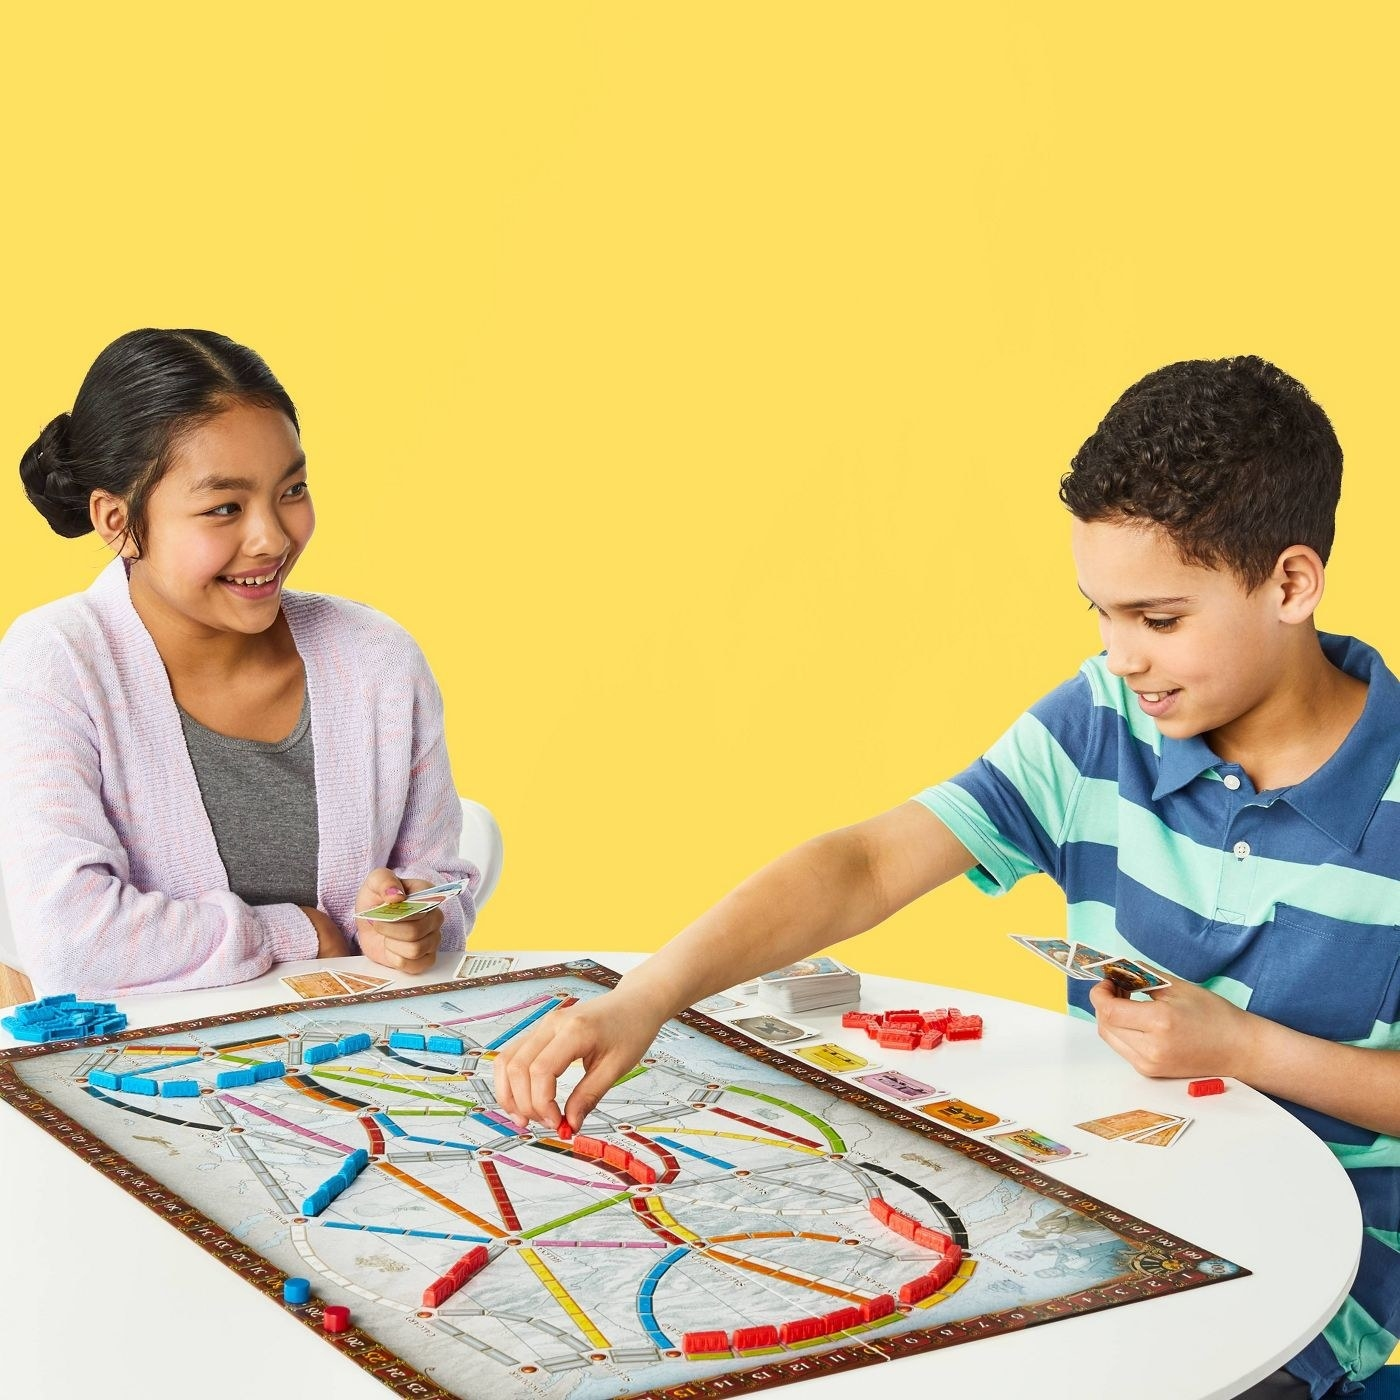 Two models playing the colorful boardgame